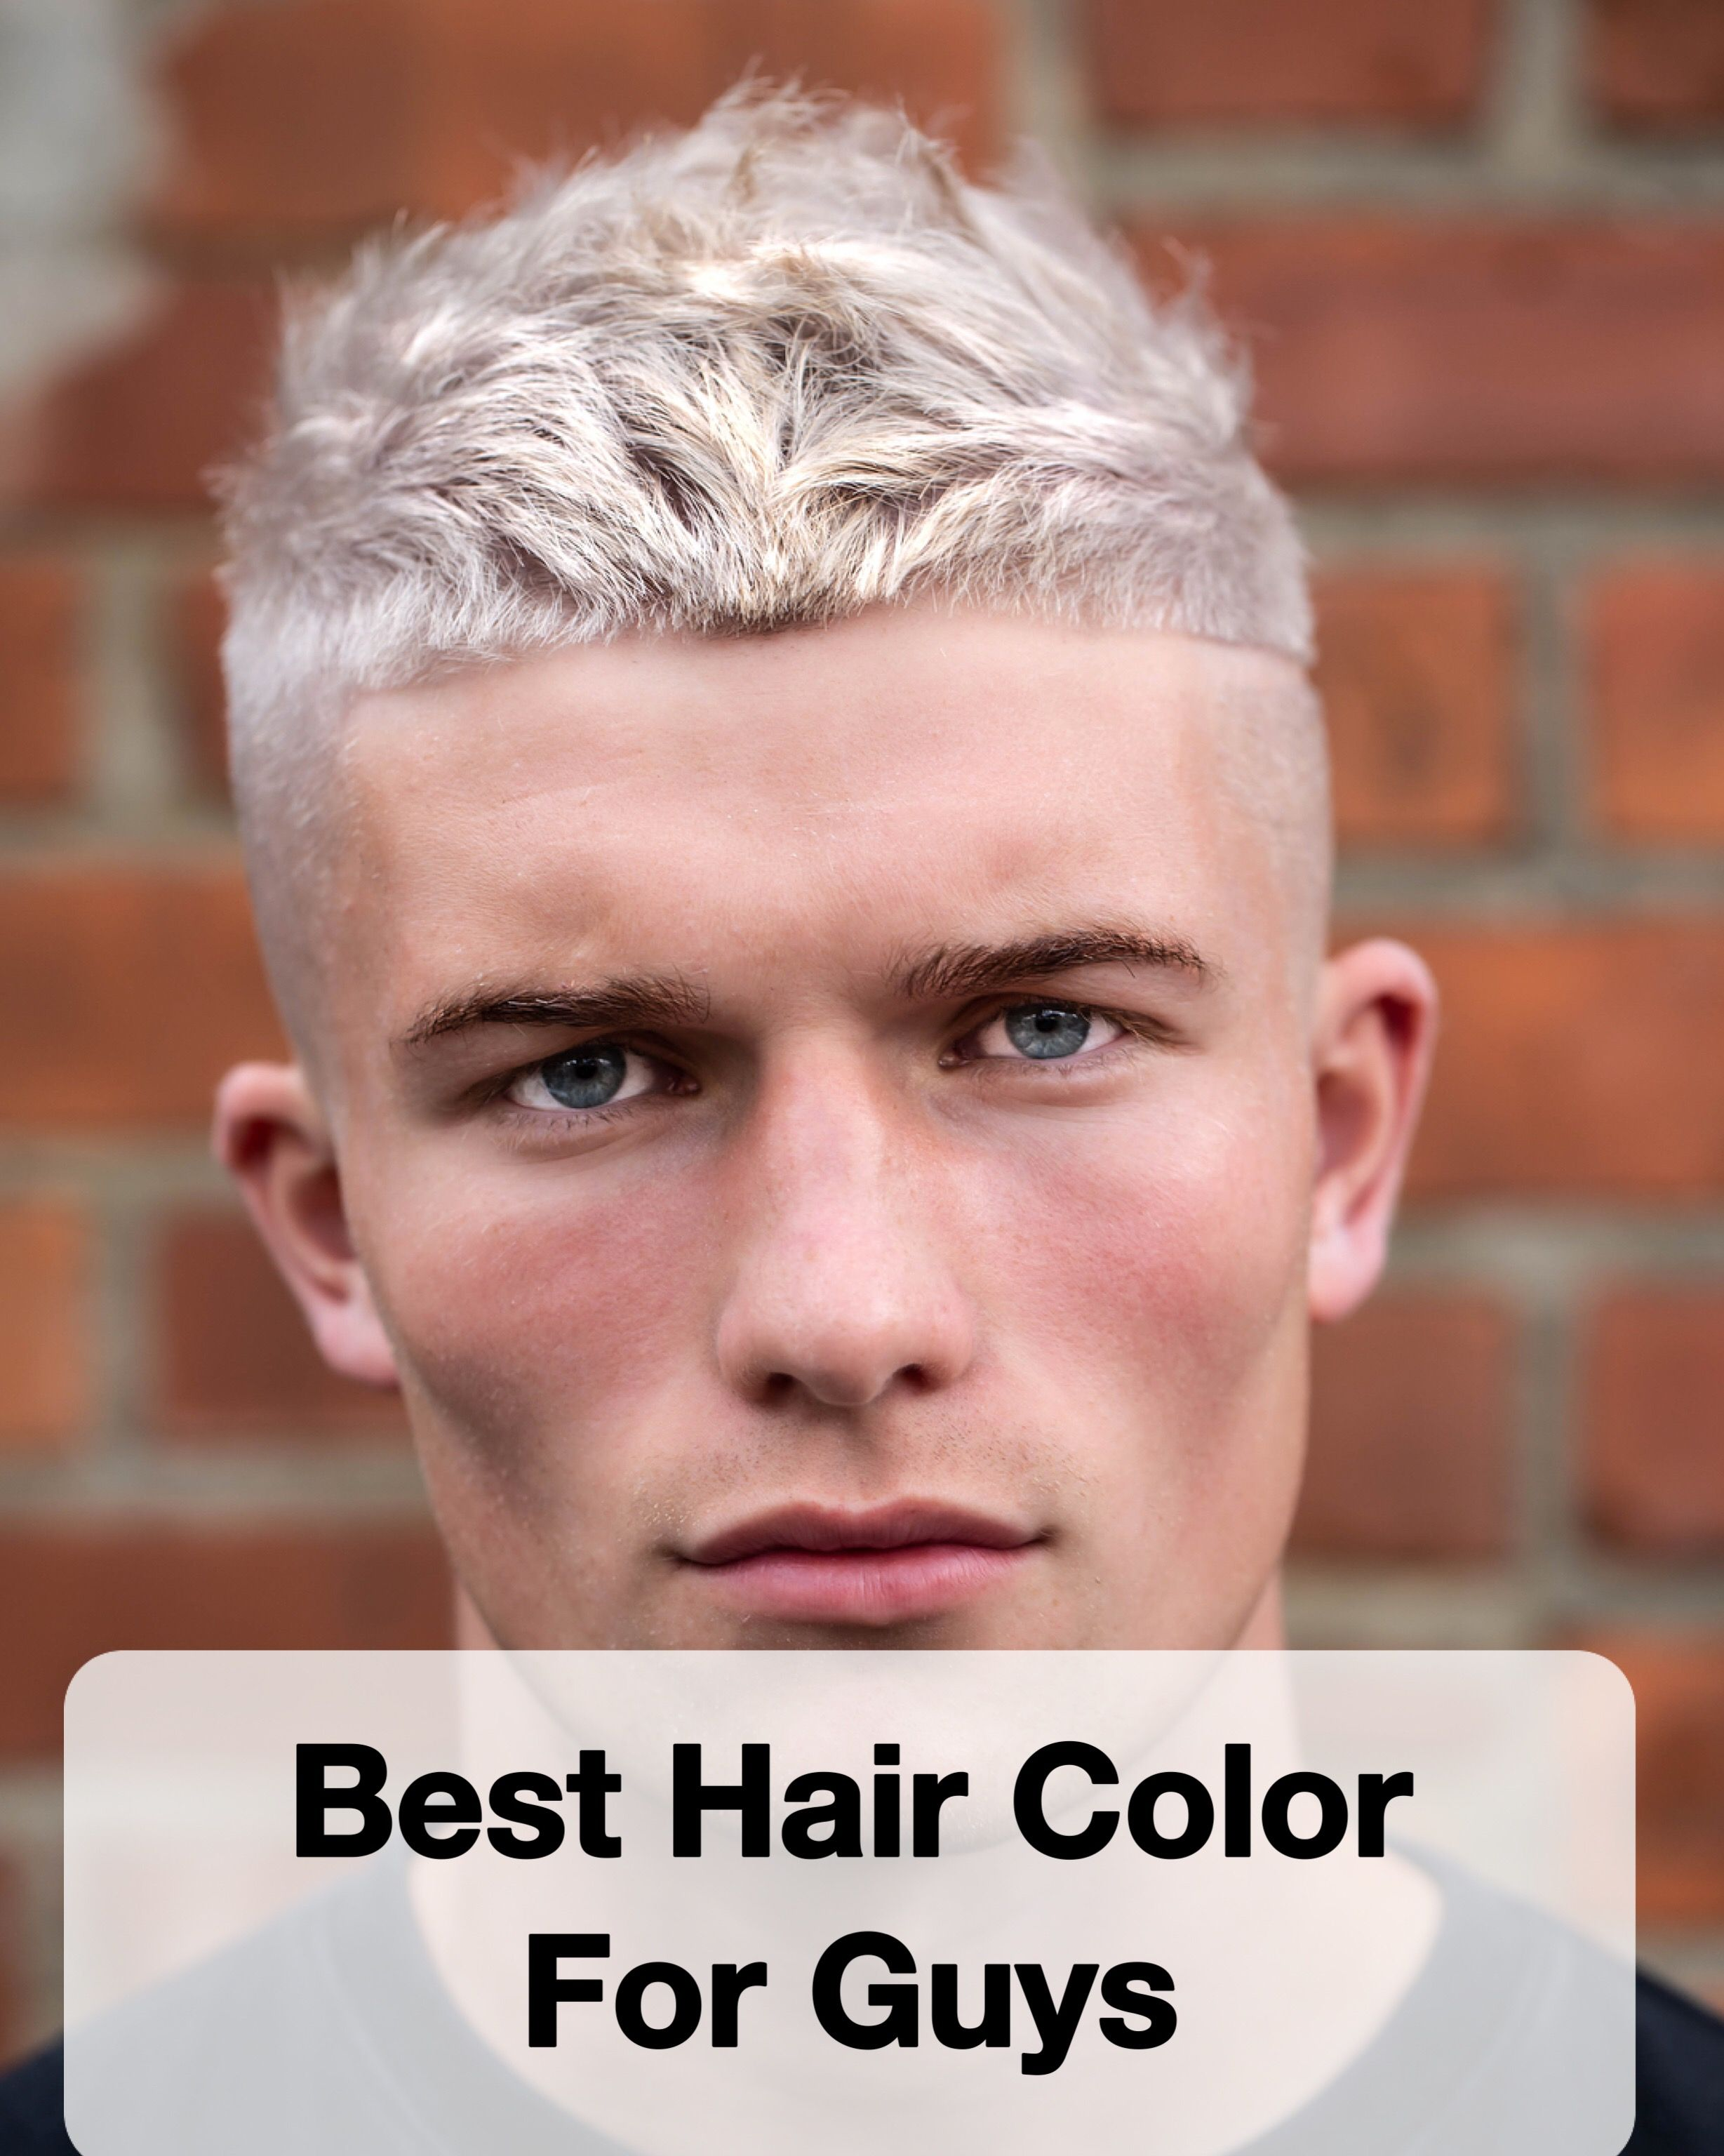 20 Best Hair Color For Guys In 2018 Hair Color Ideas Pinterest